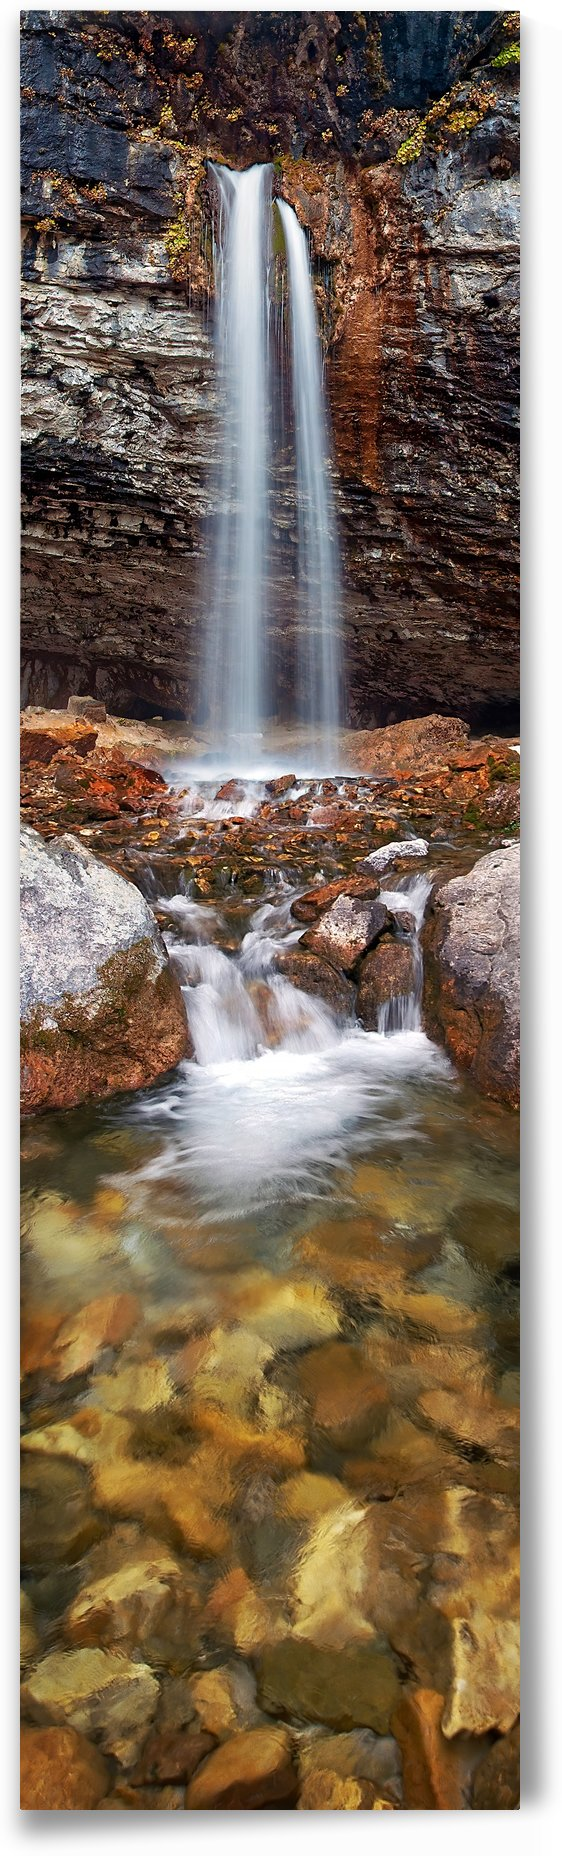 Weeping Rock by Mike D Lewis